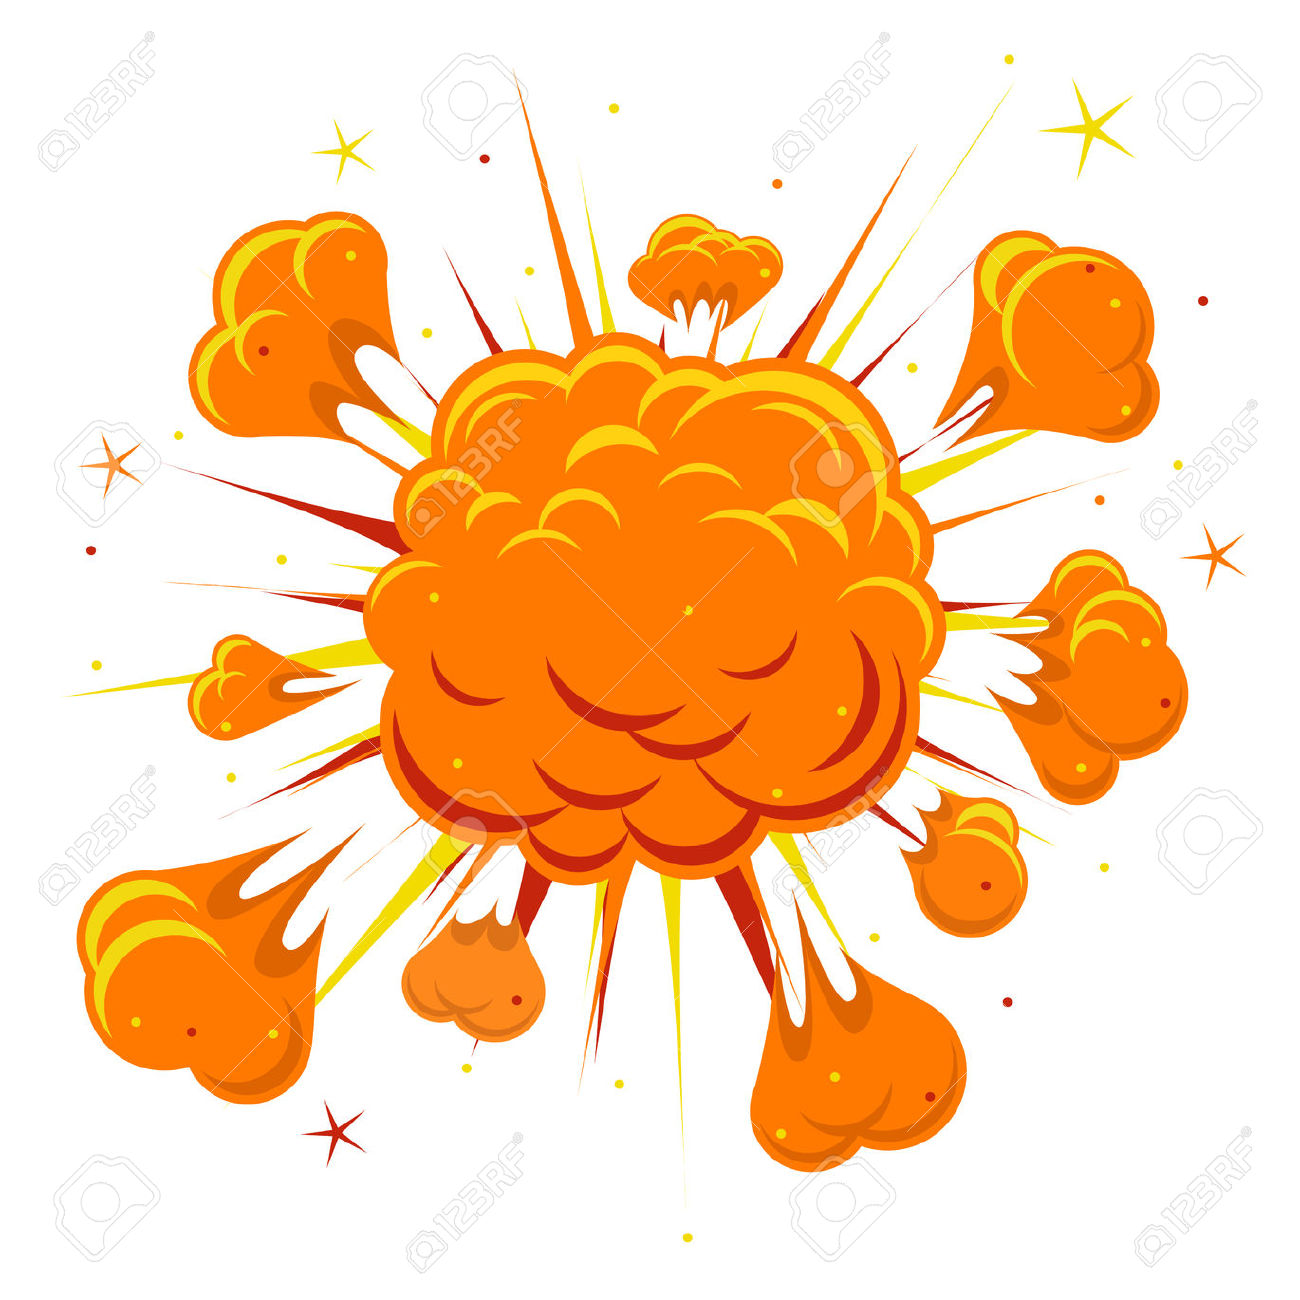 Smoke explosion. Explode clipart free download